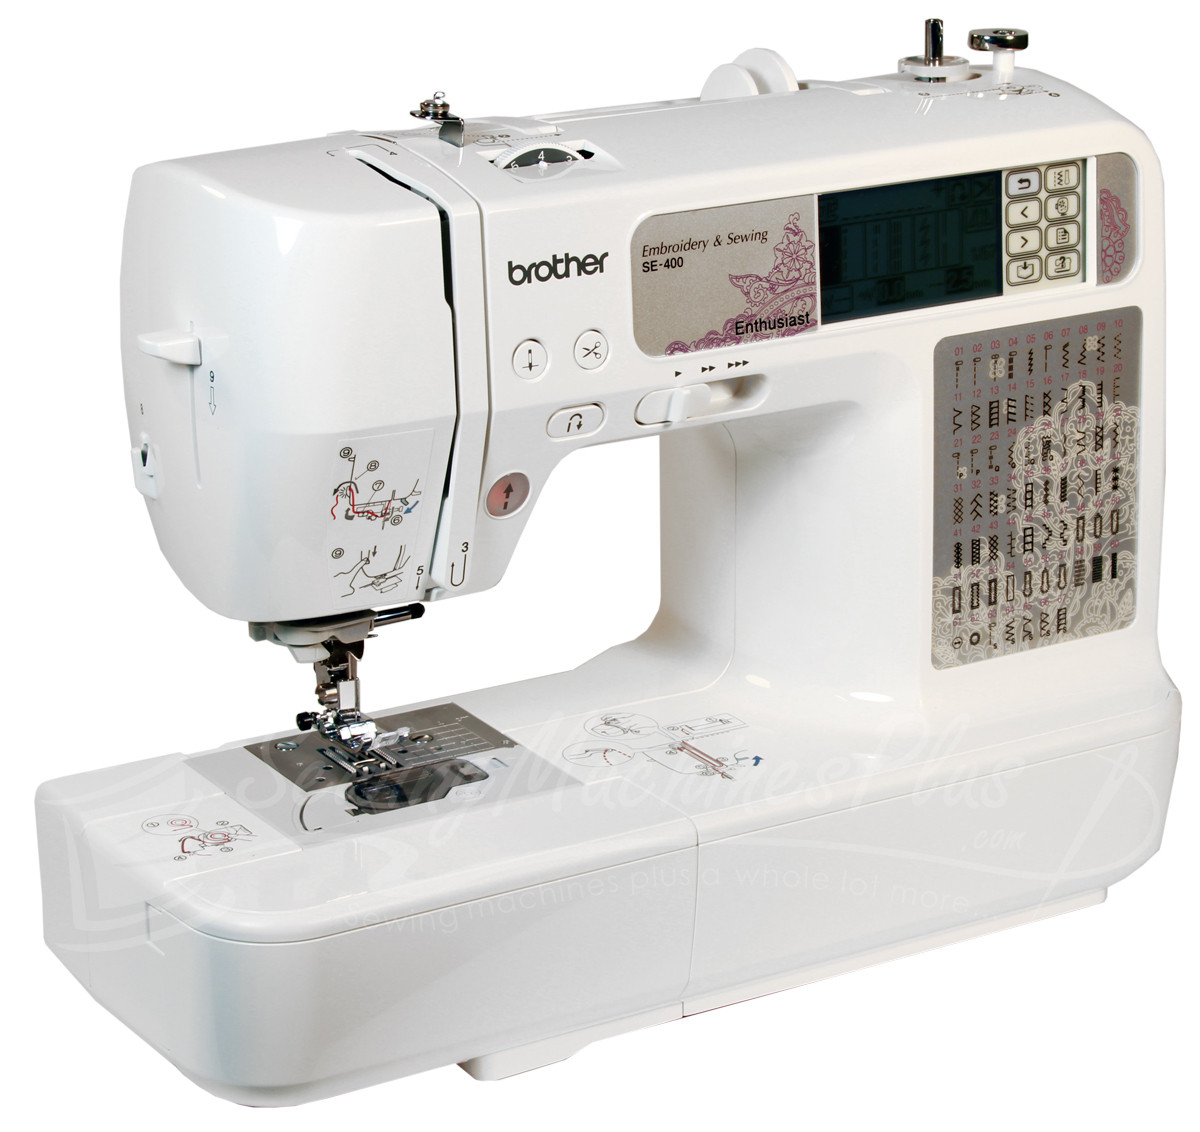 Embroidery Sewing Machine Best Of Brother Se 400 Sewing & Embroidery Machine with Puter Of Wonderful 40 Images Embroidery Sewing Machine